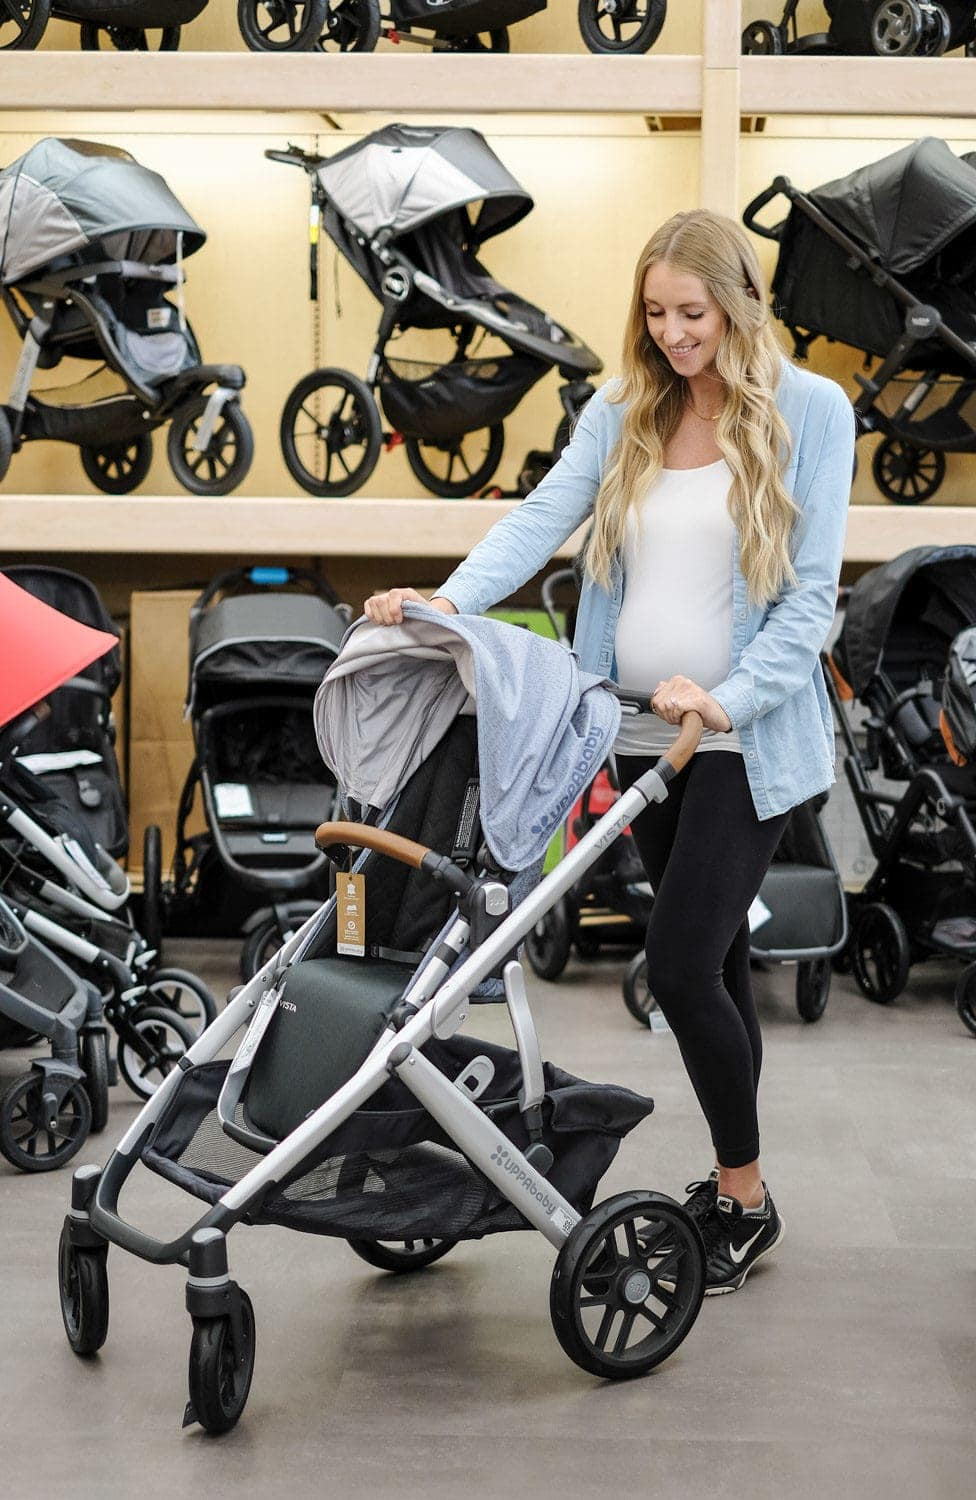 blonde woman testing out stroller in store at buy buy baby